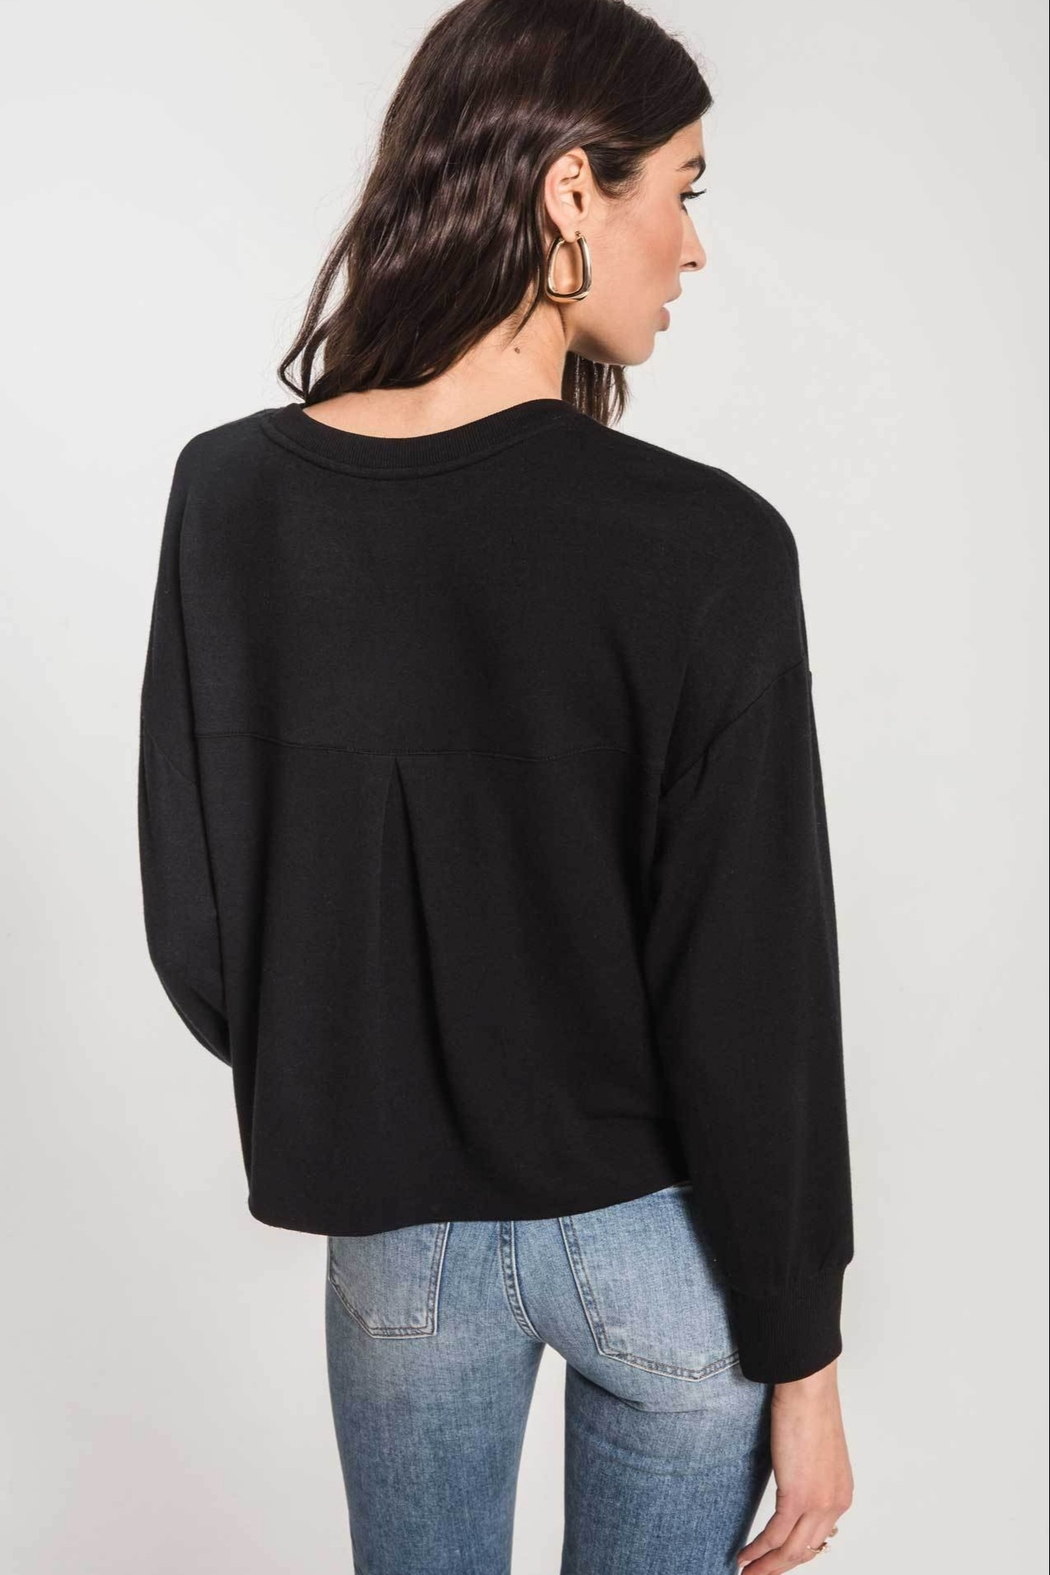 z supply Rhinestone Pullover - Side Cropped Image